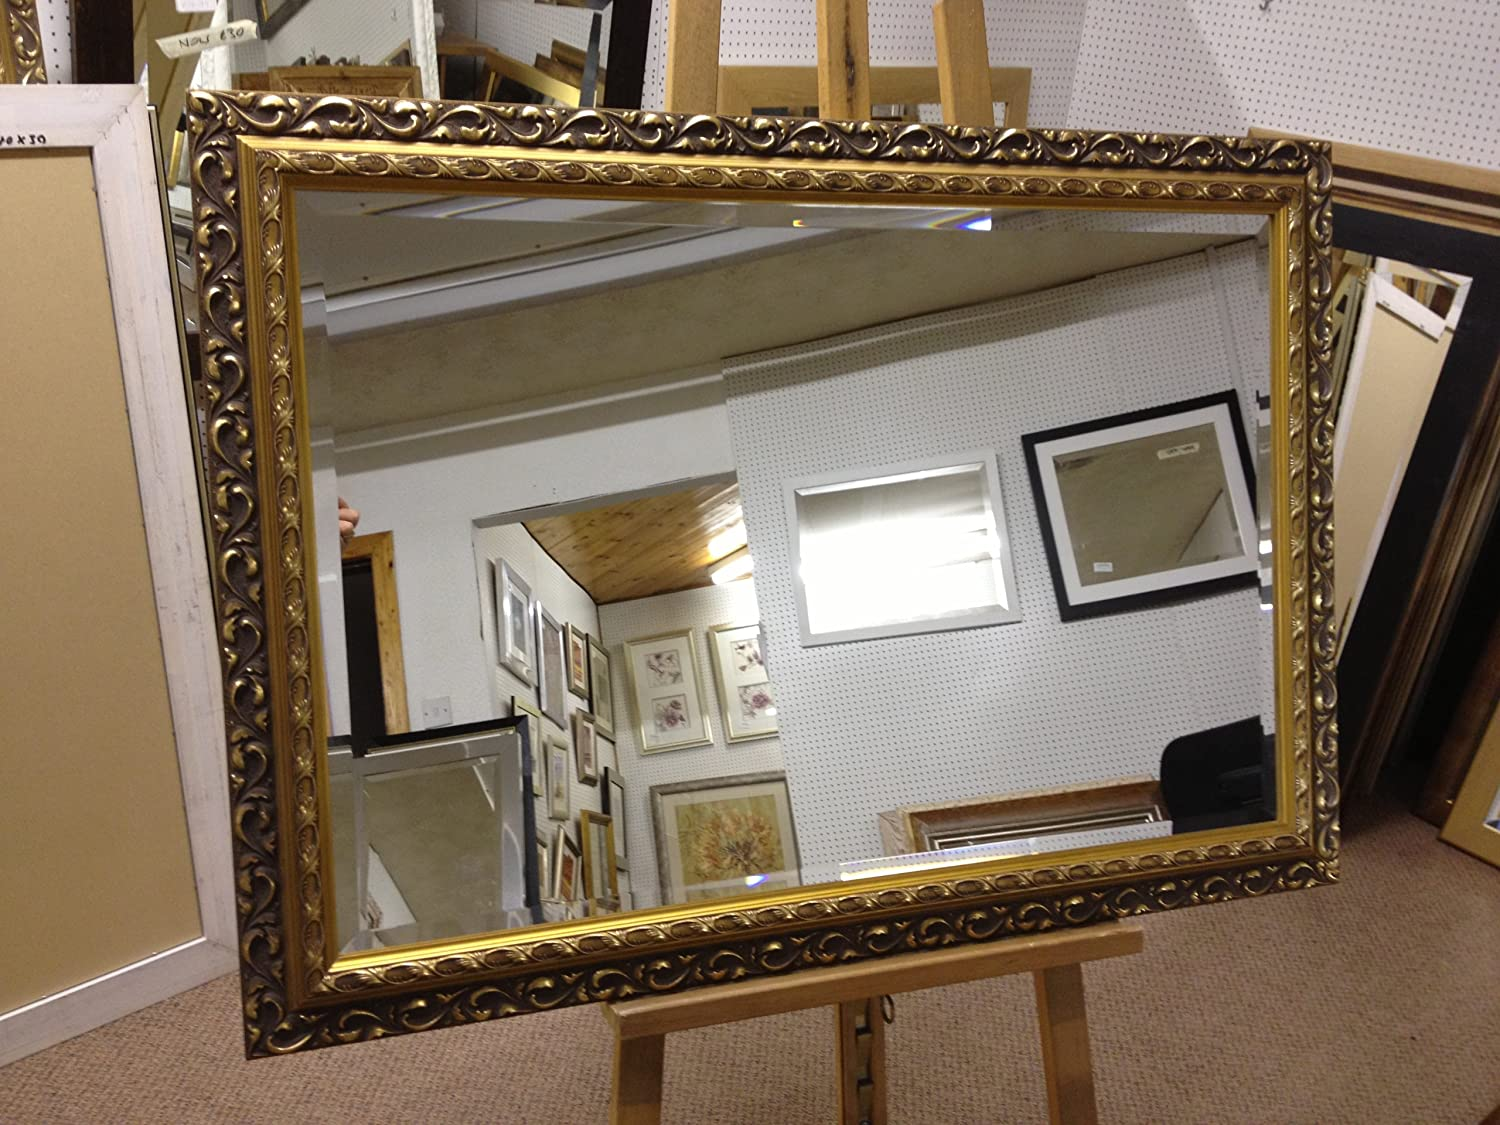 NEW ORNATE GOLD SHABBY CHIC STYLE WALL OVERMANTLE MIRROR - VARIOUS (Bevel Mirror Glass, 21